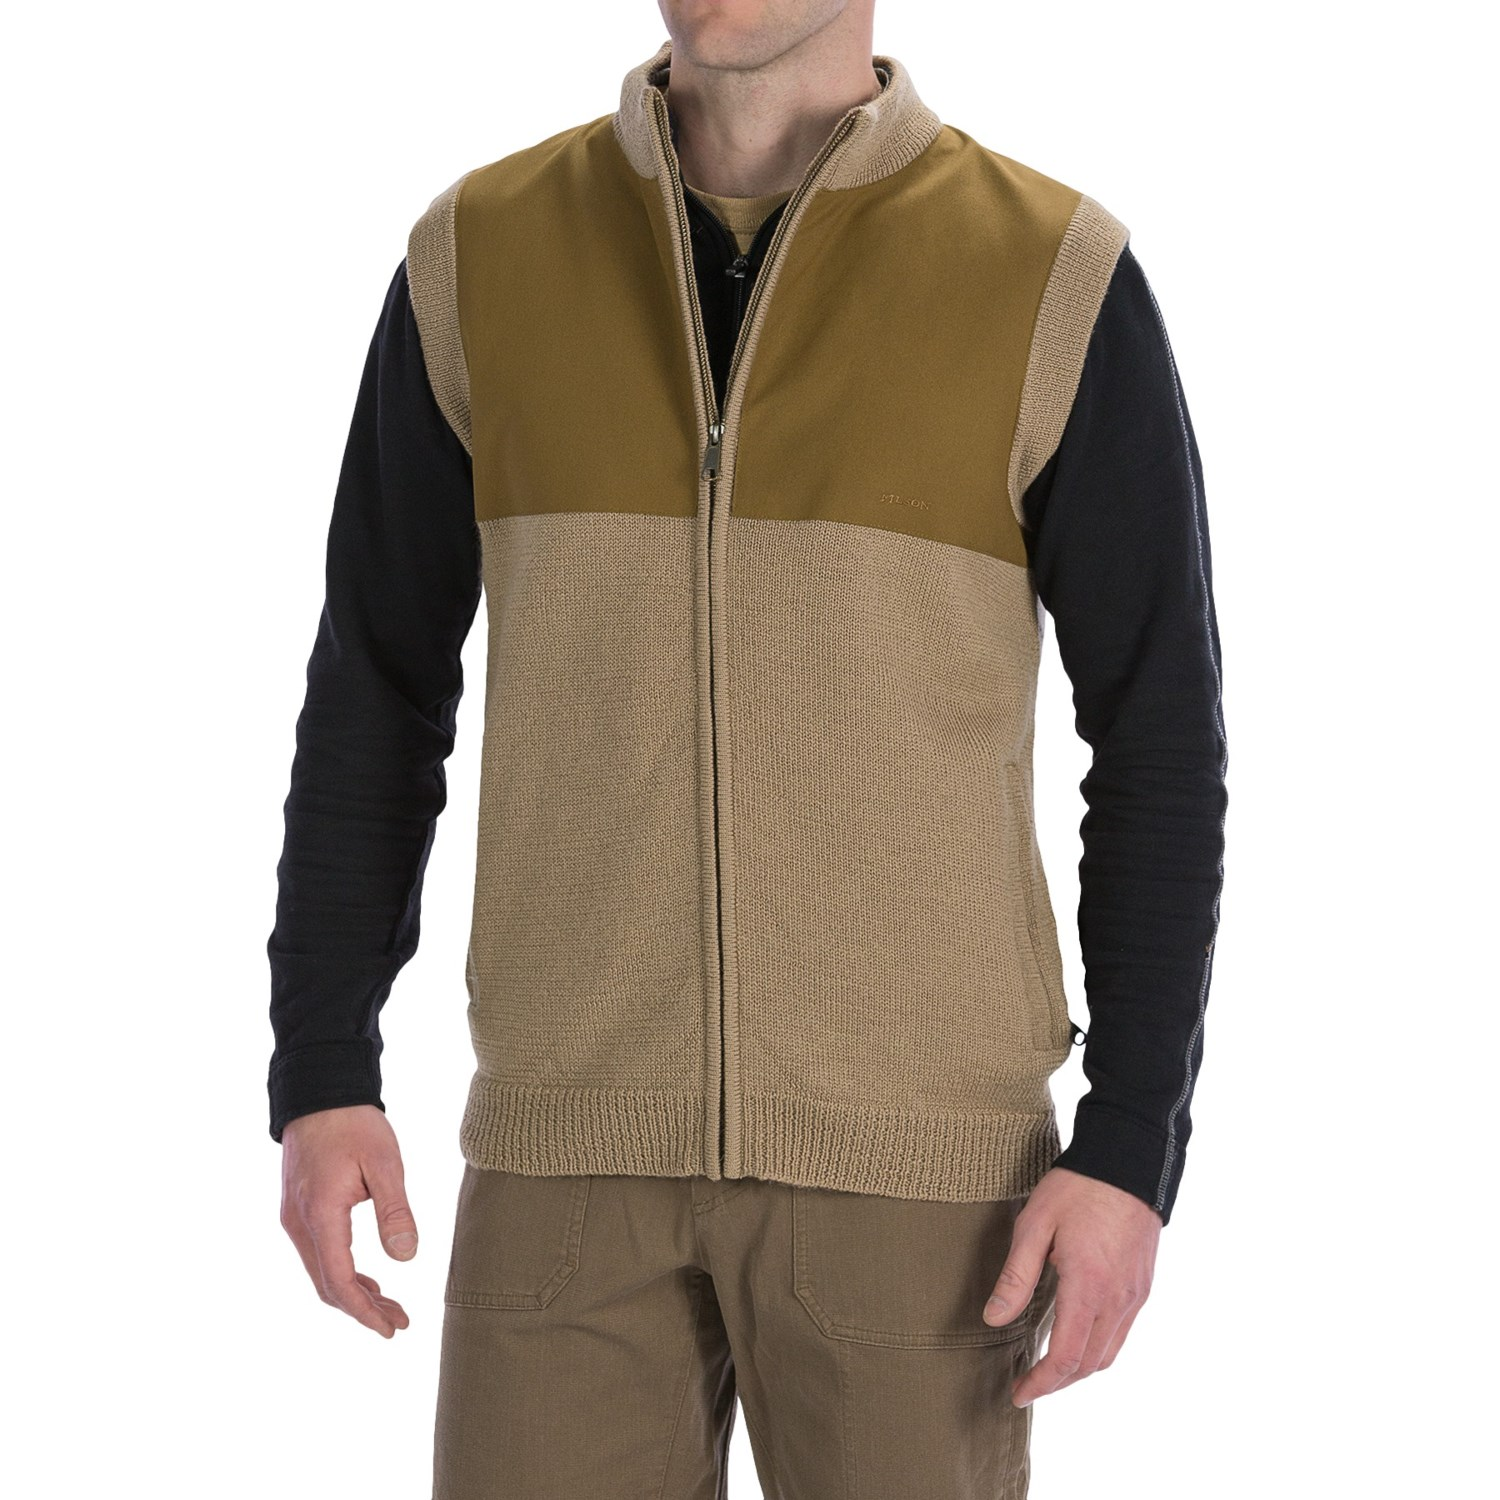 Wool Full Zip Sweater Vest - Cardigan With Buttons